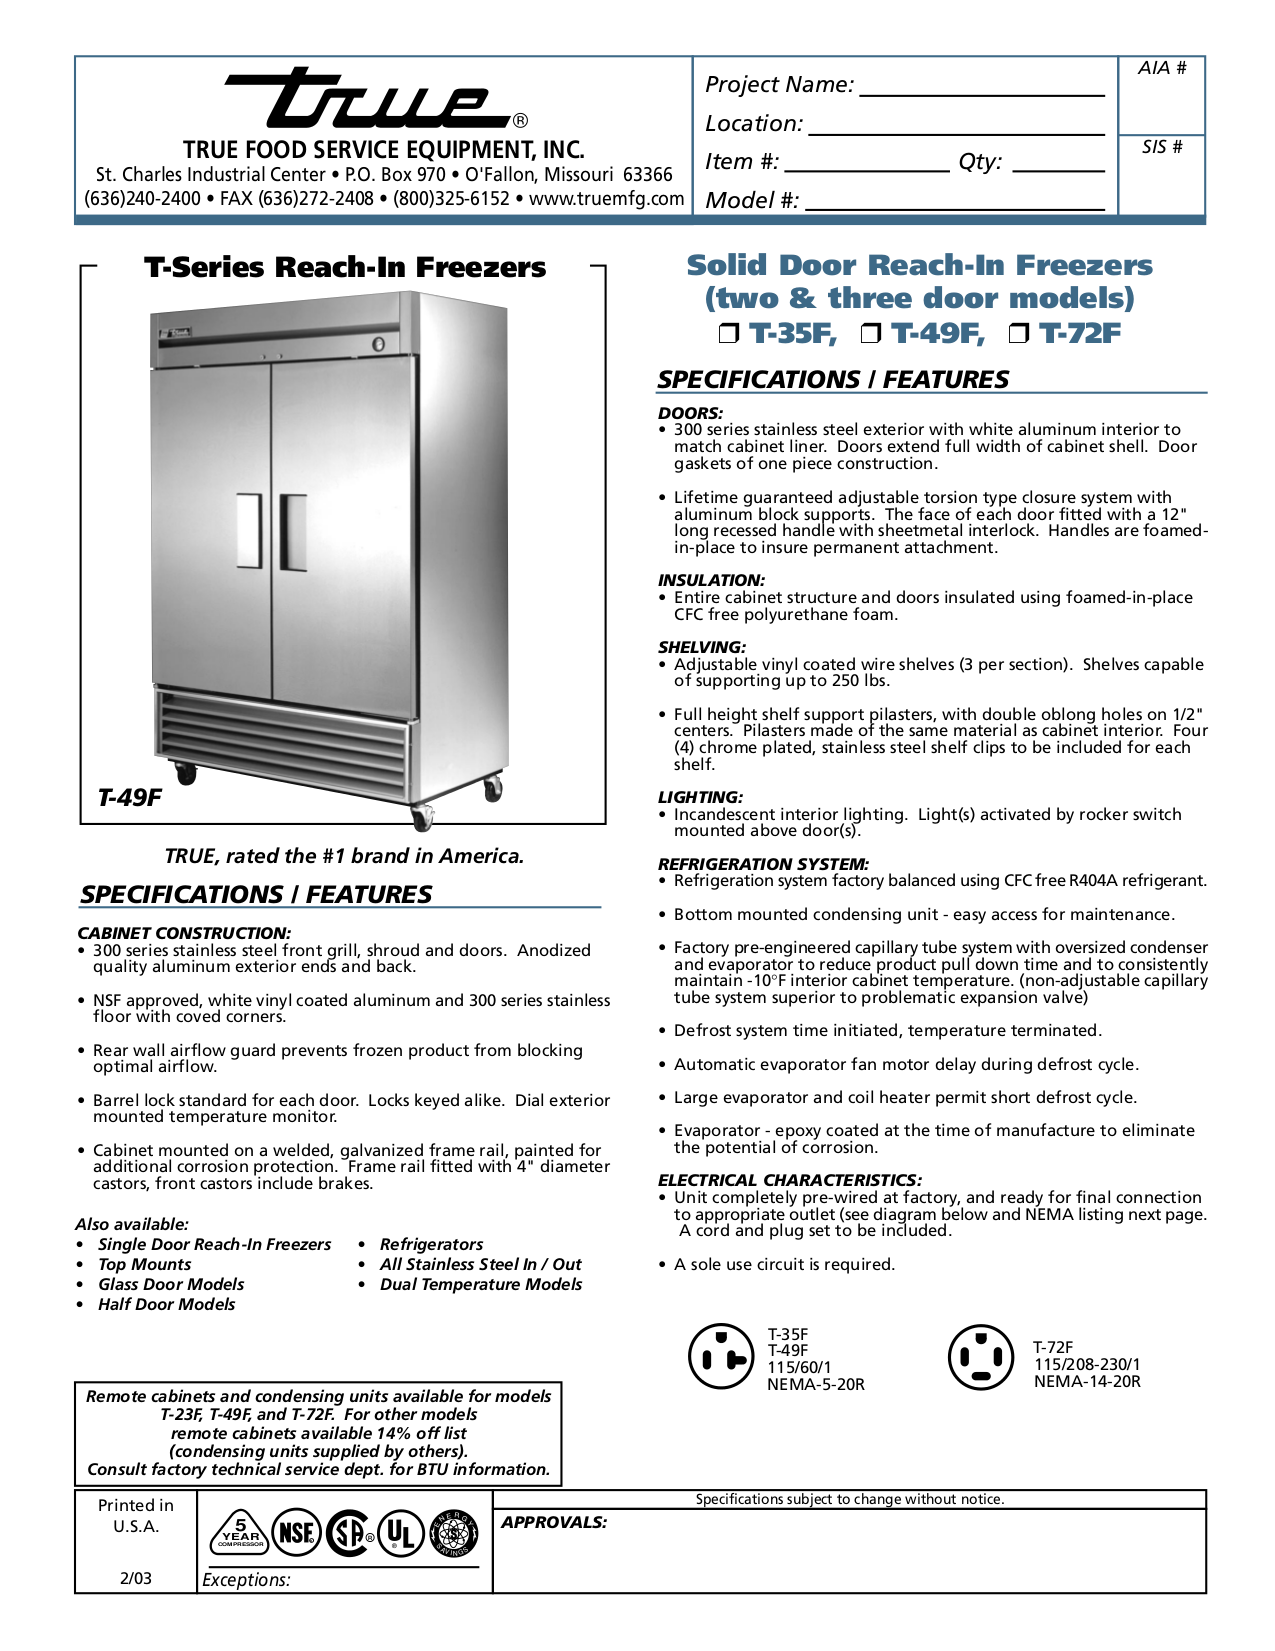 T49F.pdf 0 true freezer wiring diagram true t 49f freezer \u2022 free wiring true t 49 wiring diagram at readyjetset.co